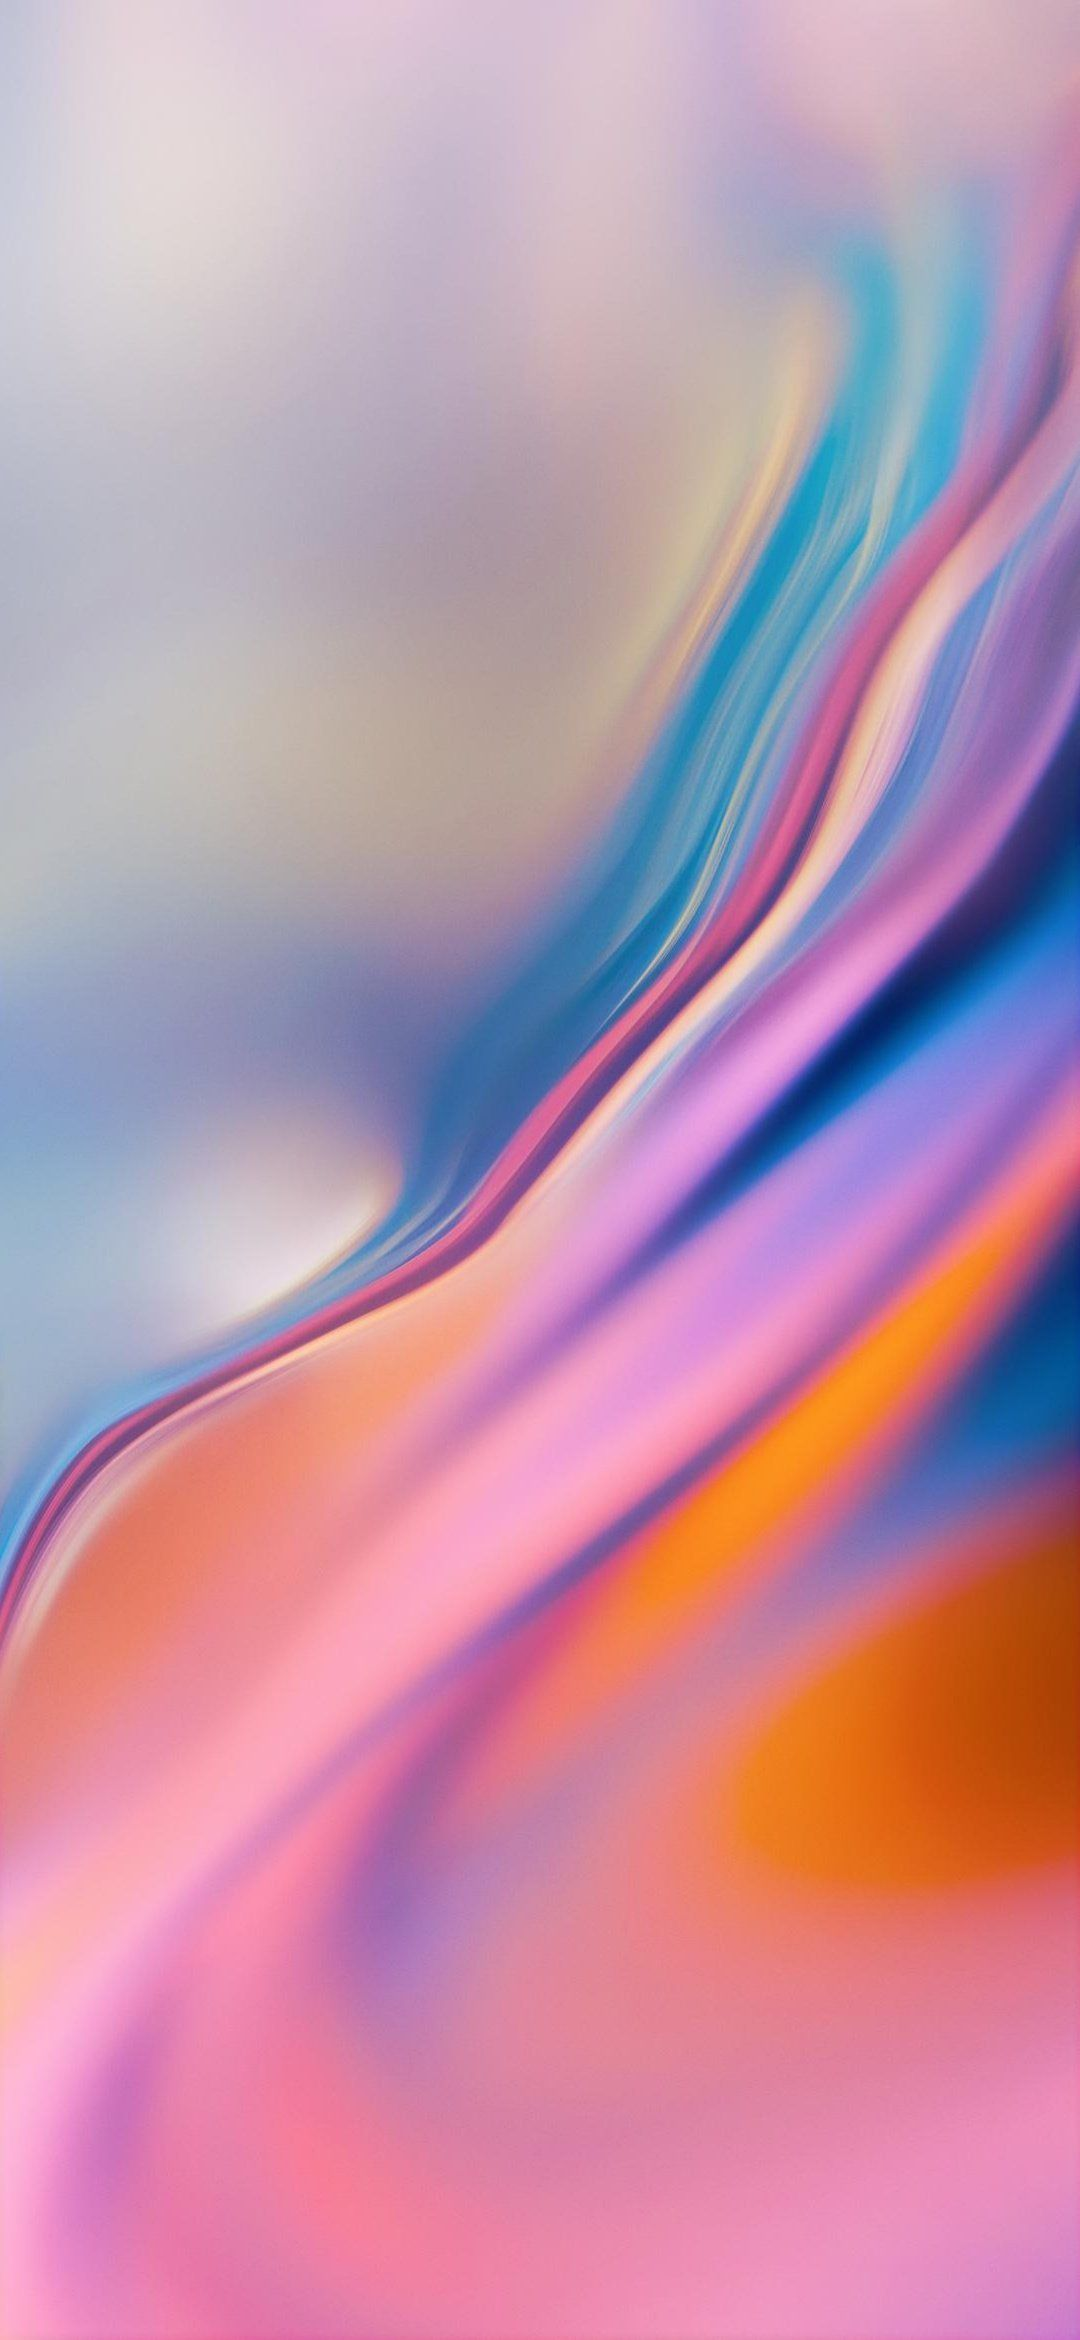 Abstract Wallpaper In 2020 Tumblr Iphone Wallpaper Iphone Wallpaper Ios Iphone Wallpaper Gradient